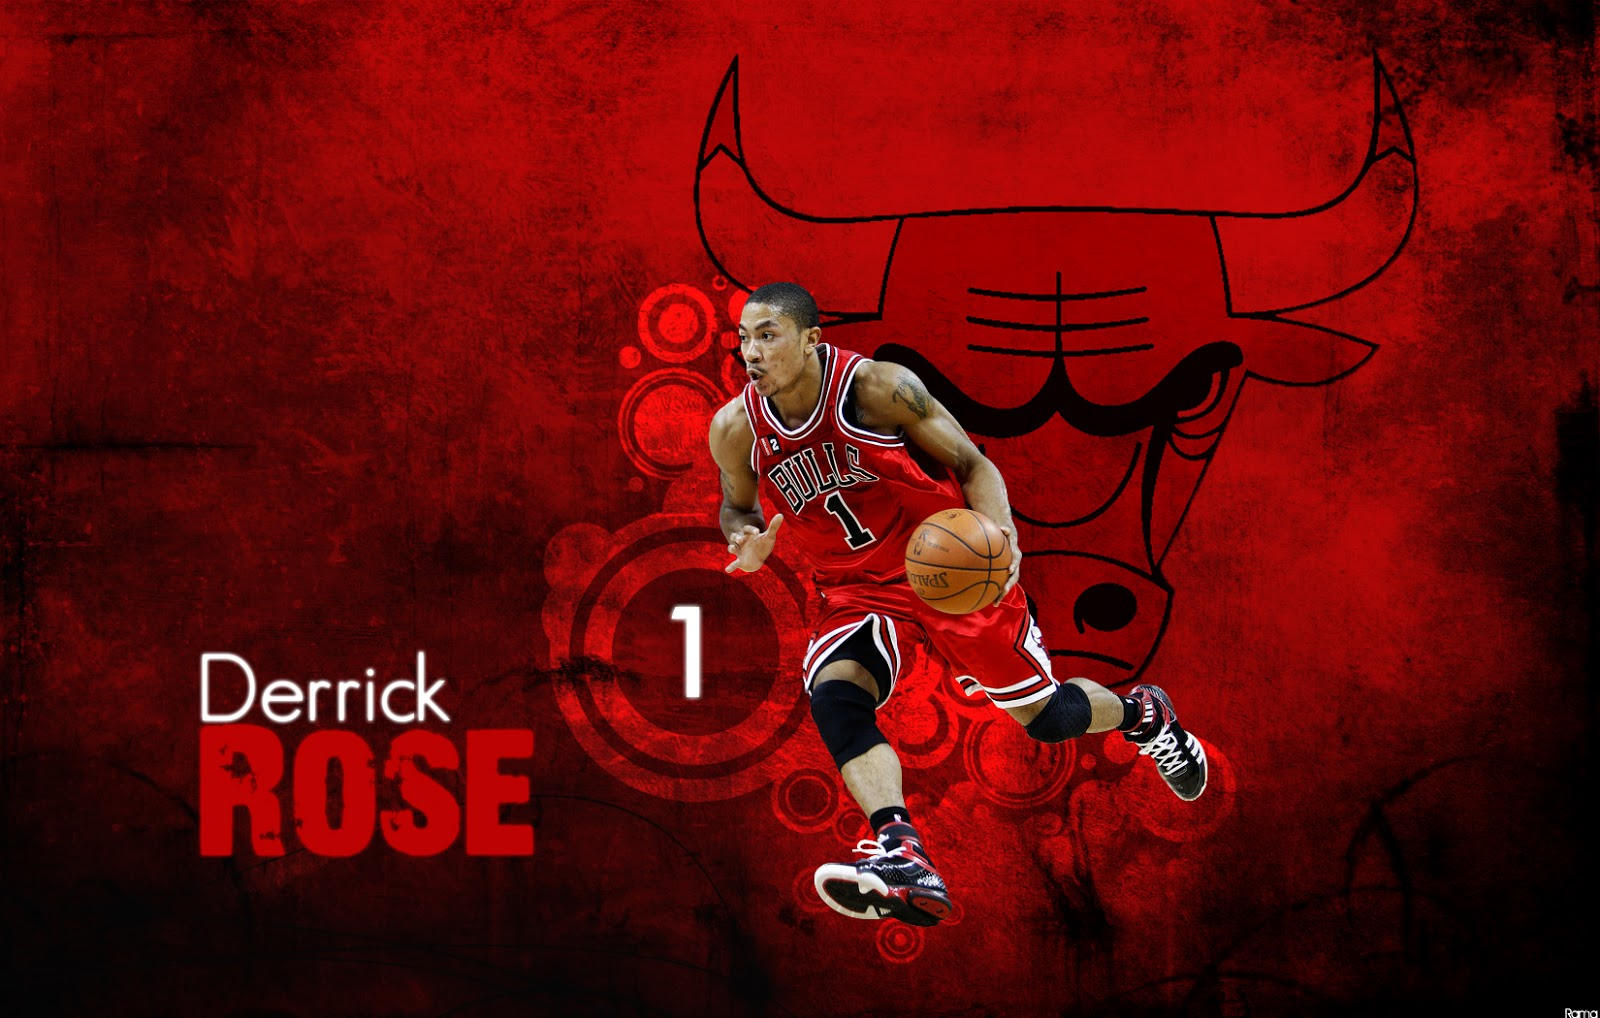 Derrick Rose HD Wallpapers 2013 2014 HD Wallpapers 1600x1018